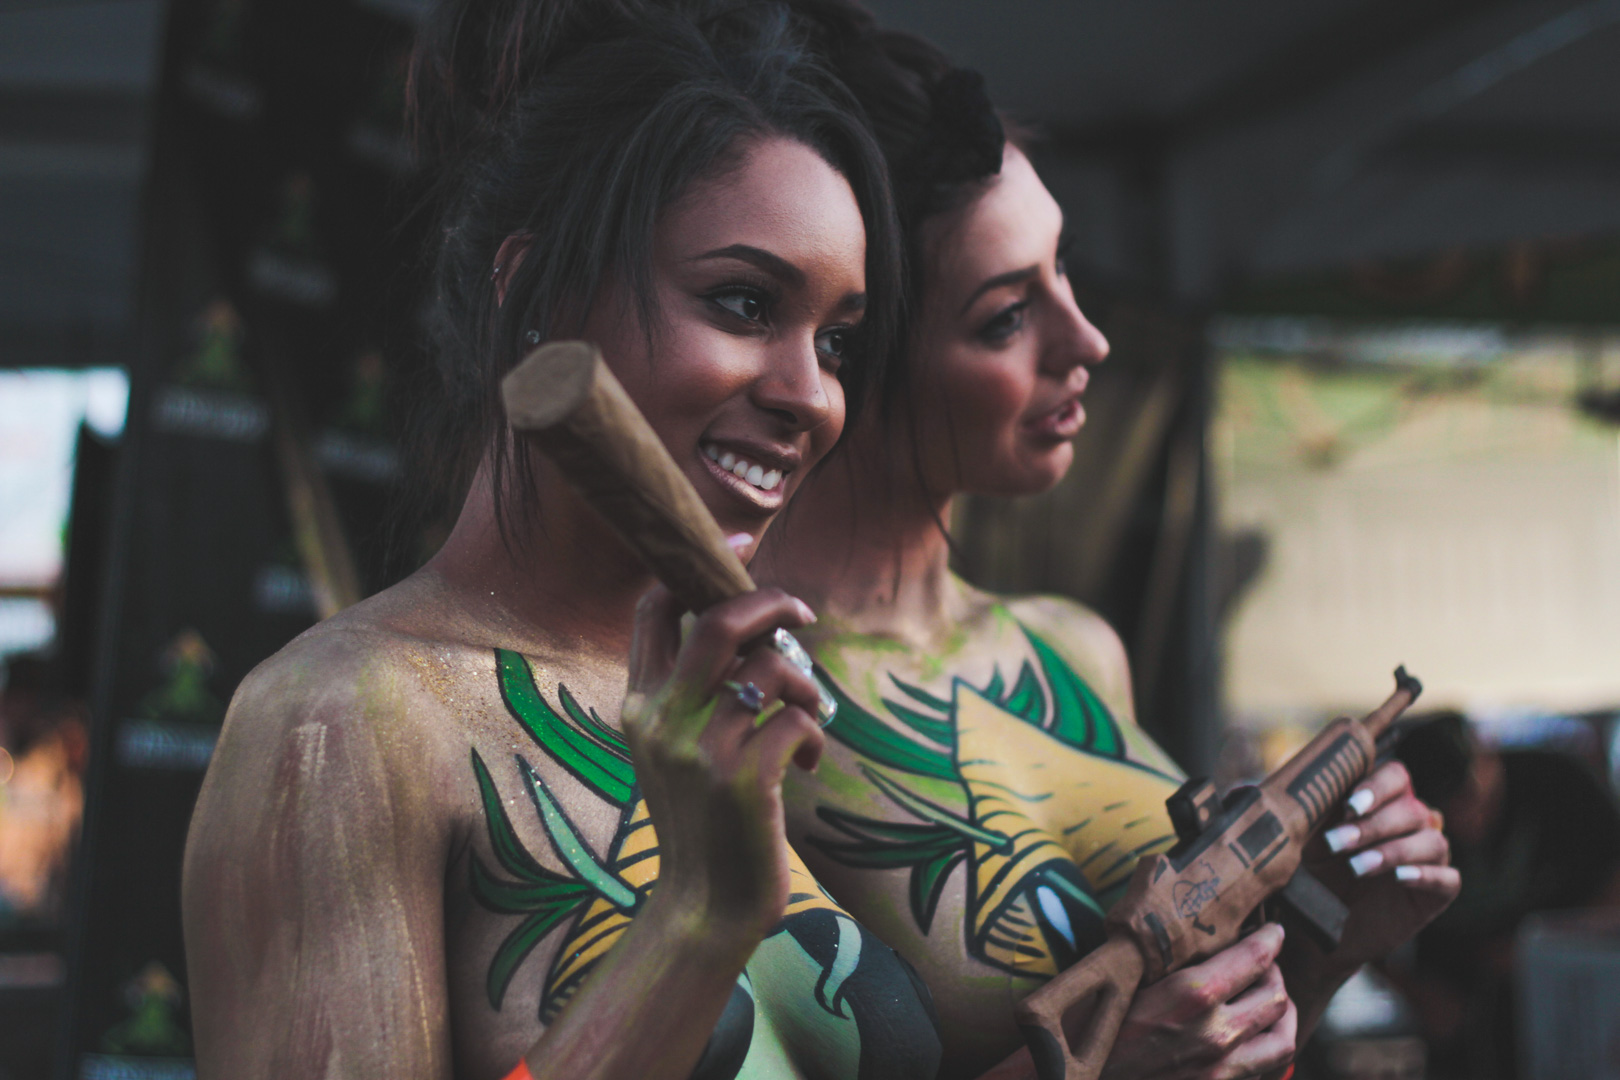 Bodypaint in Los Angeles